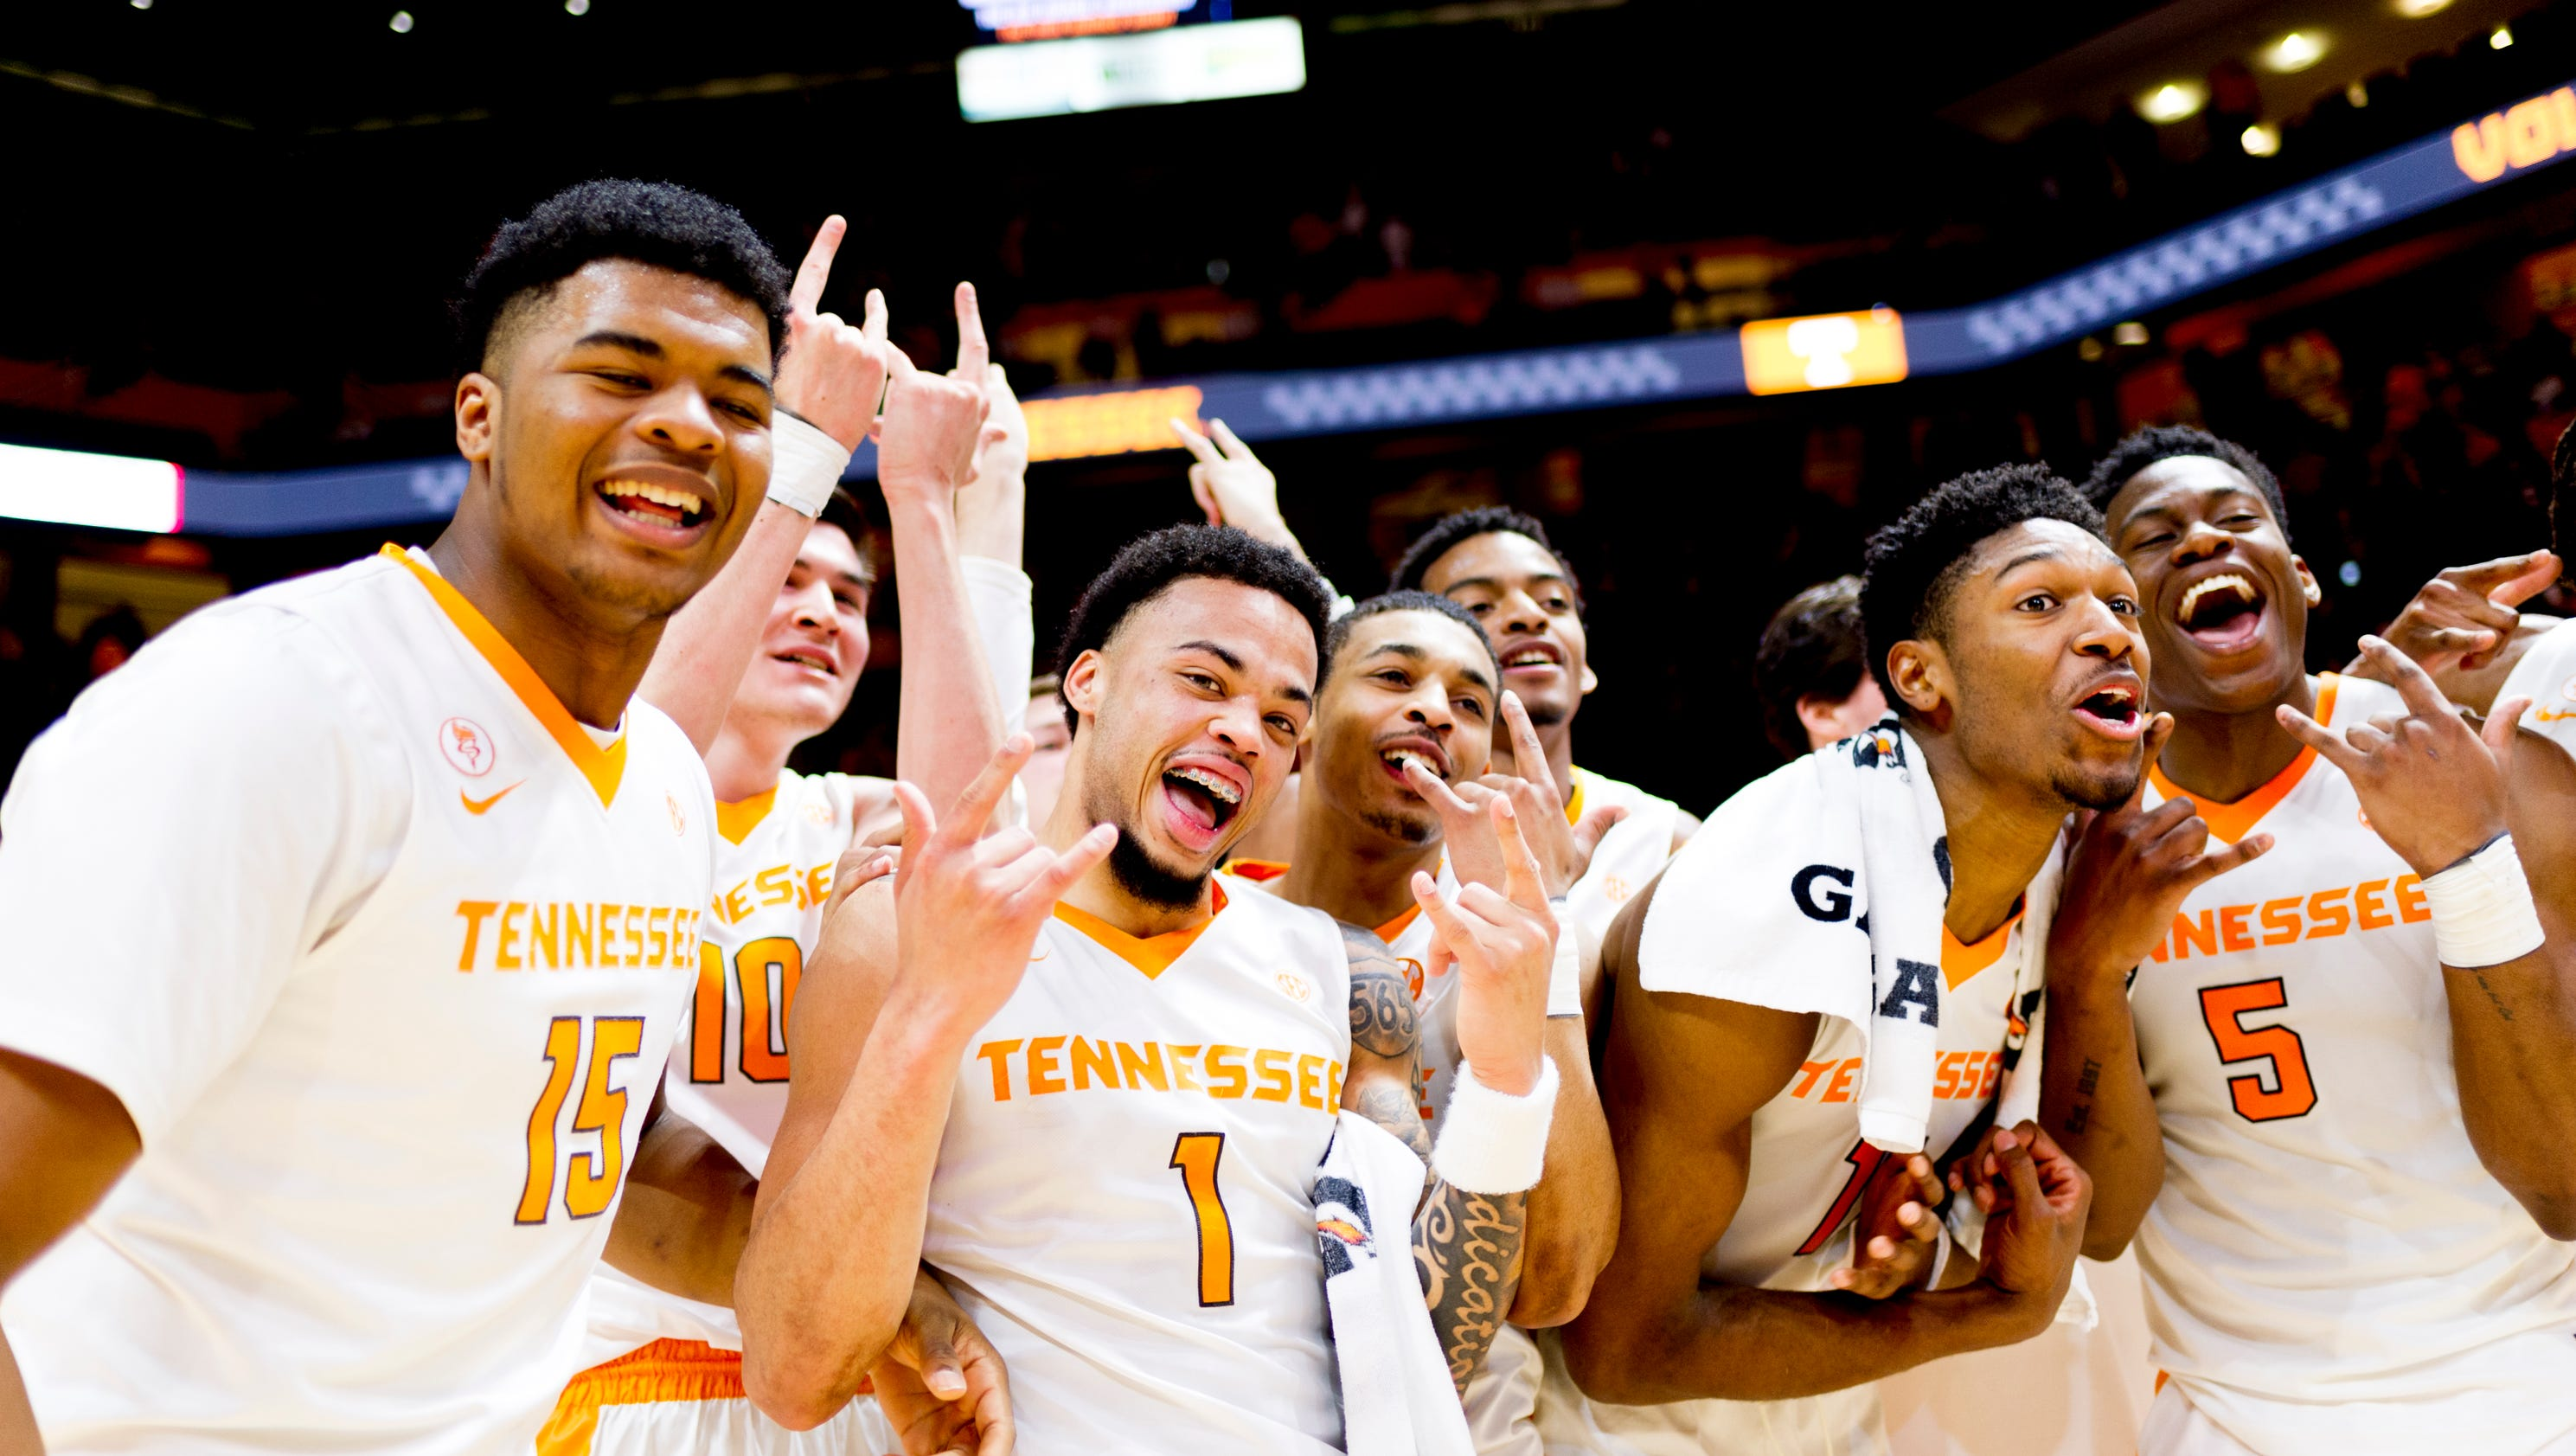 Vols basketball: Bracketology has Tennessee playing in Nashville